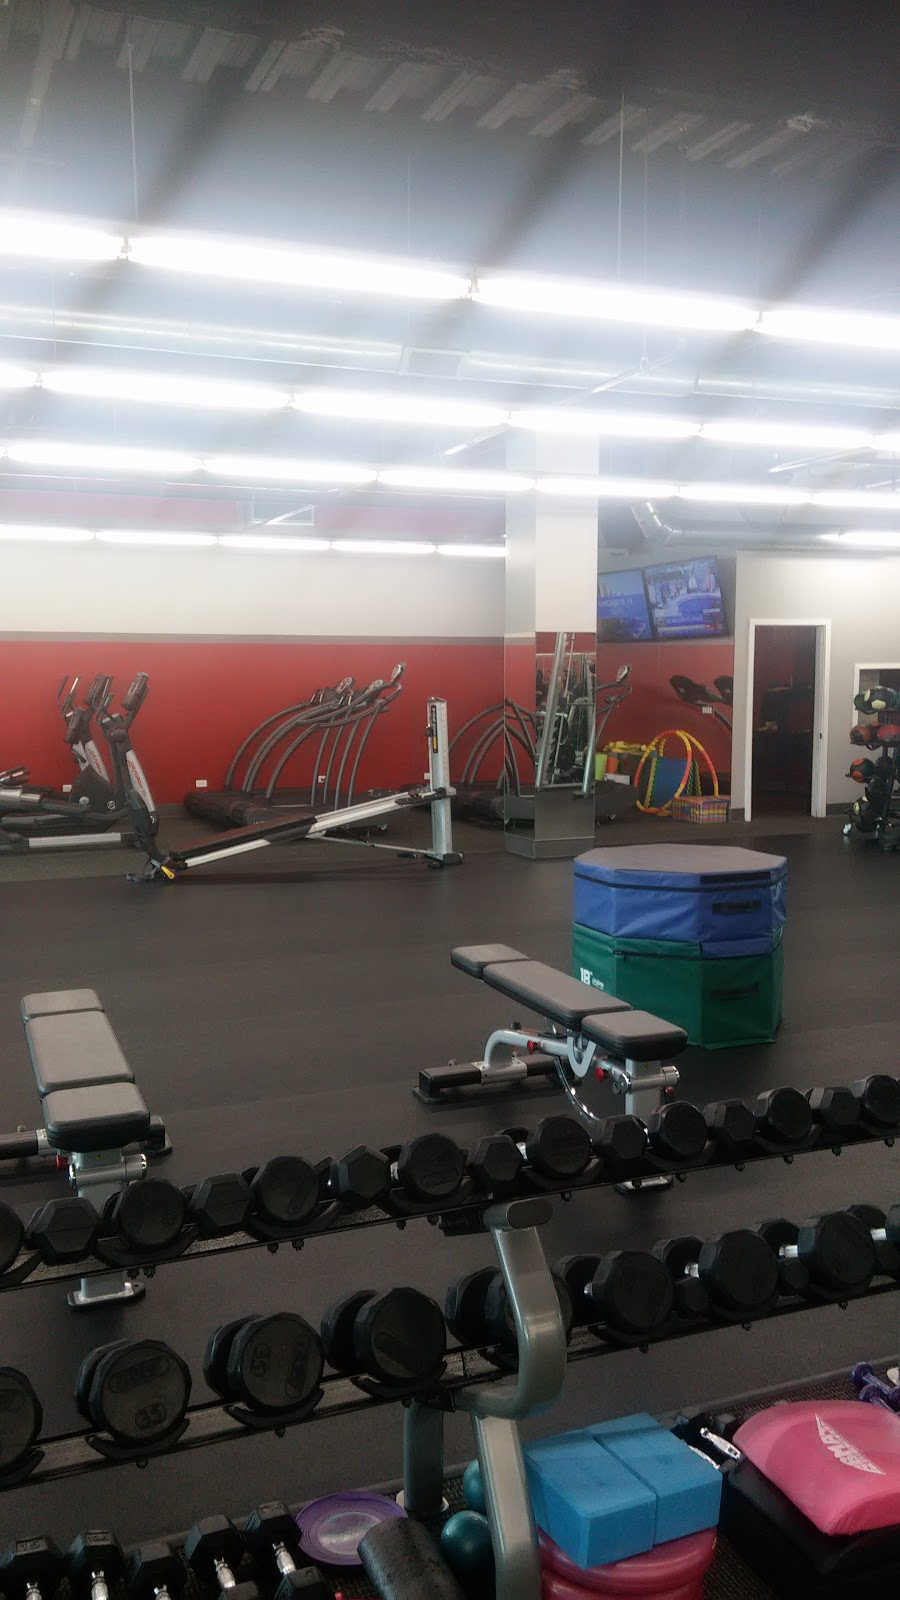 Revive Fitness - gym  | Photo 2 of 8 | Address: 2724 Dundee Rd #1, Northbrook, IL 60062, USA | Phone: (847) 780-4421